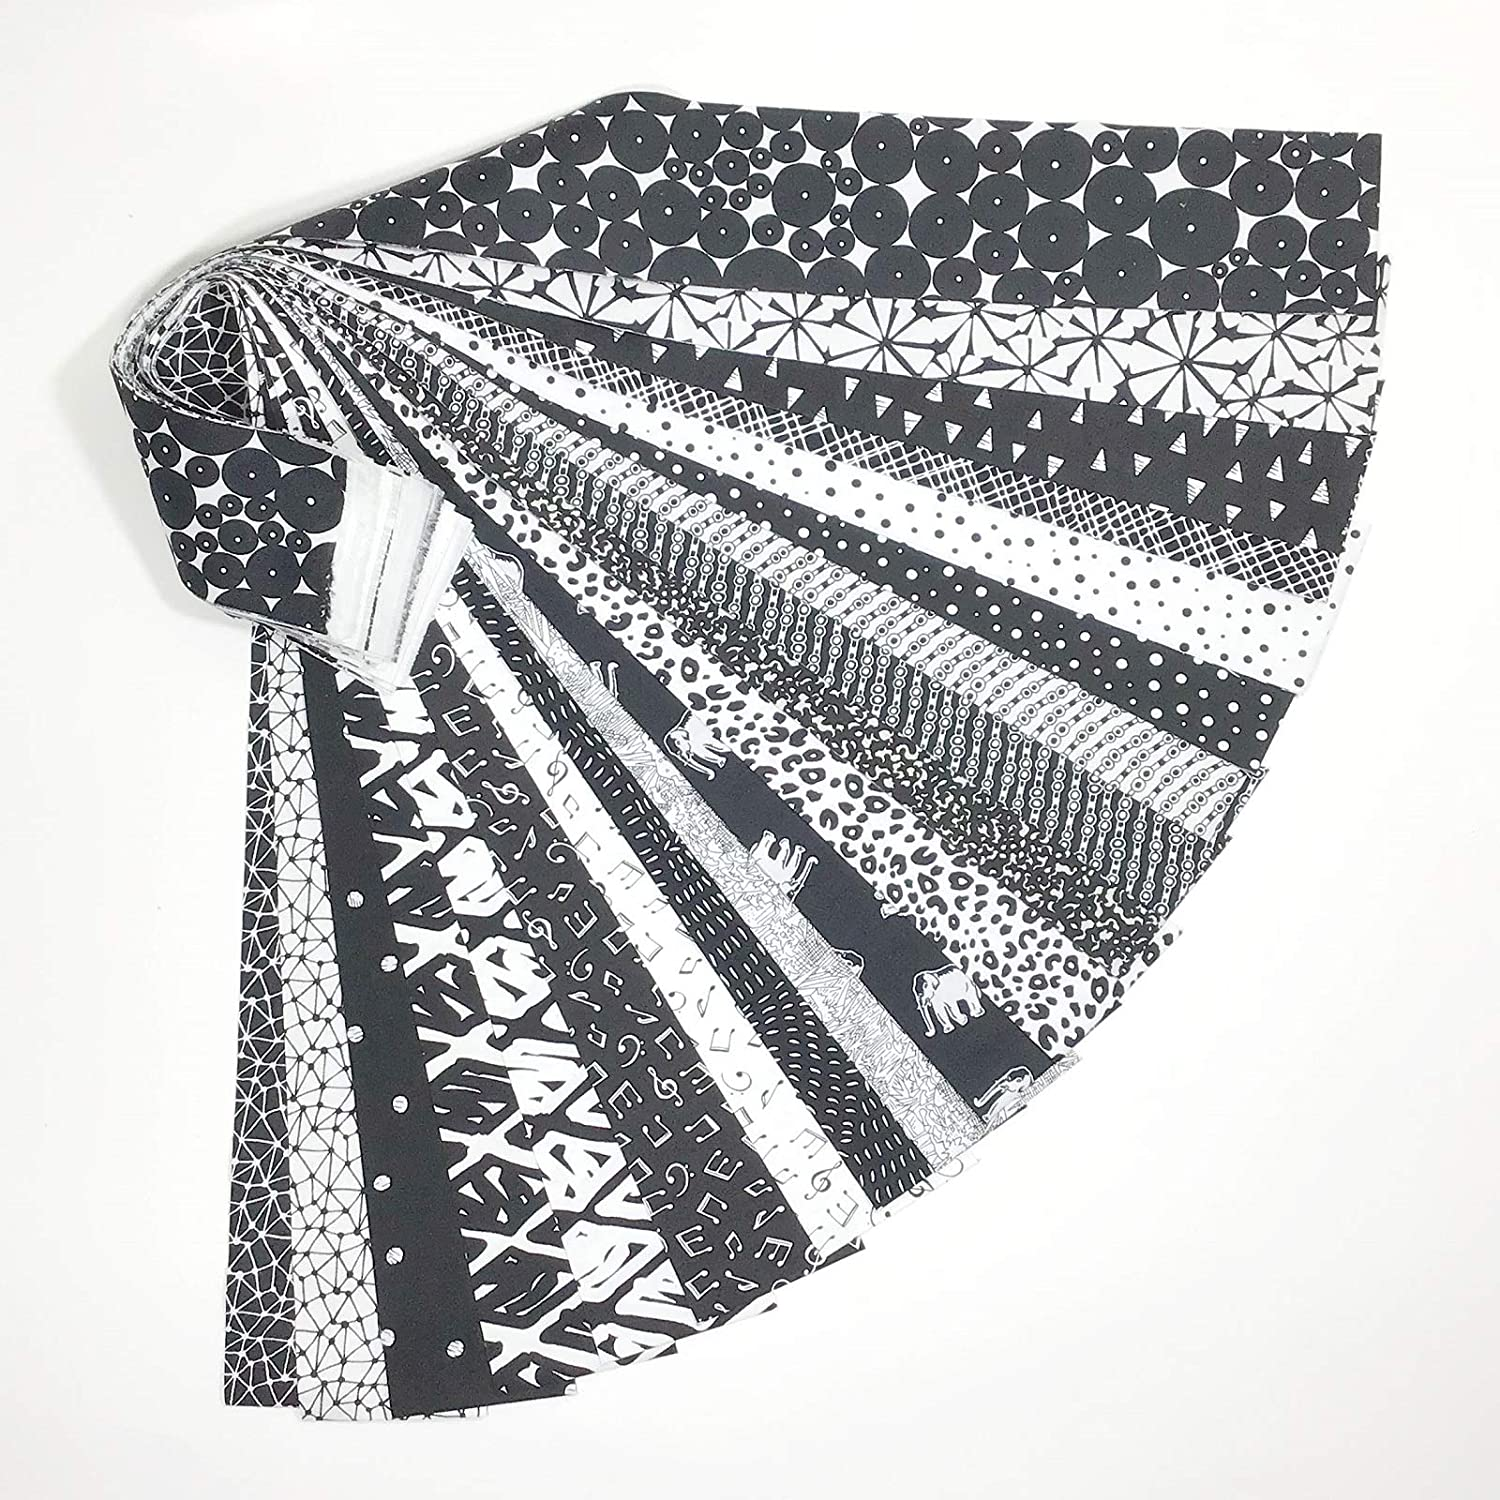 Jelly Roll 20 Cotton Quilting Fabric Strips 2.5 X 43-inch Classic Black and White No Duplicates Material Treasures CBW-20